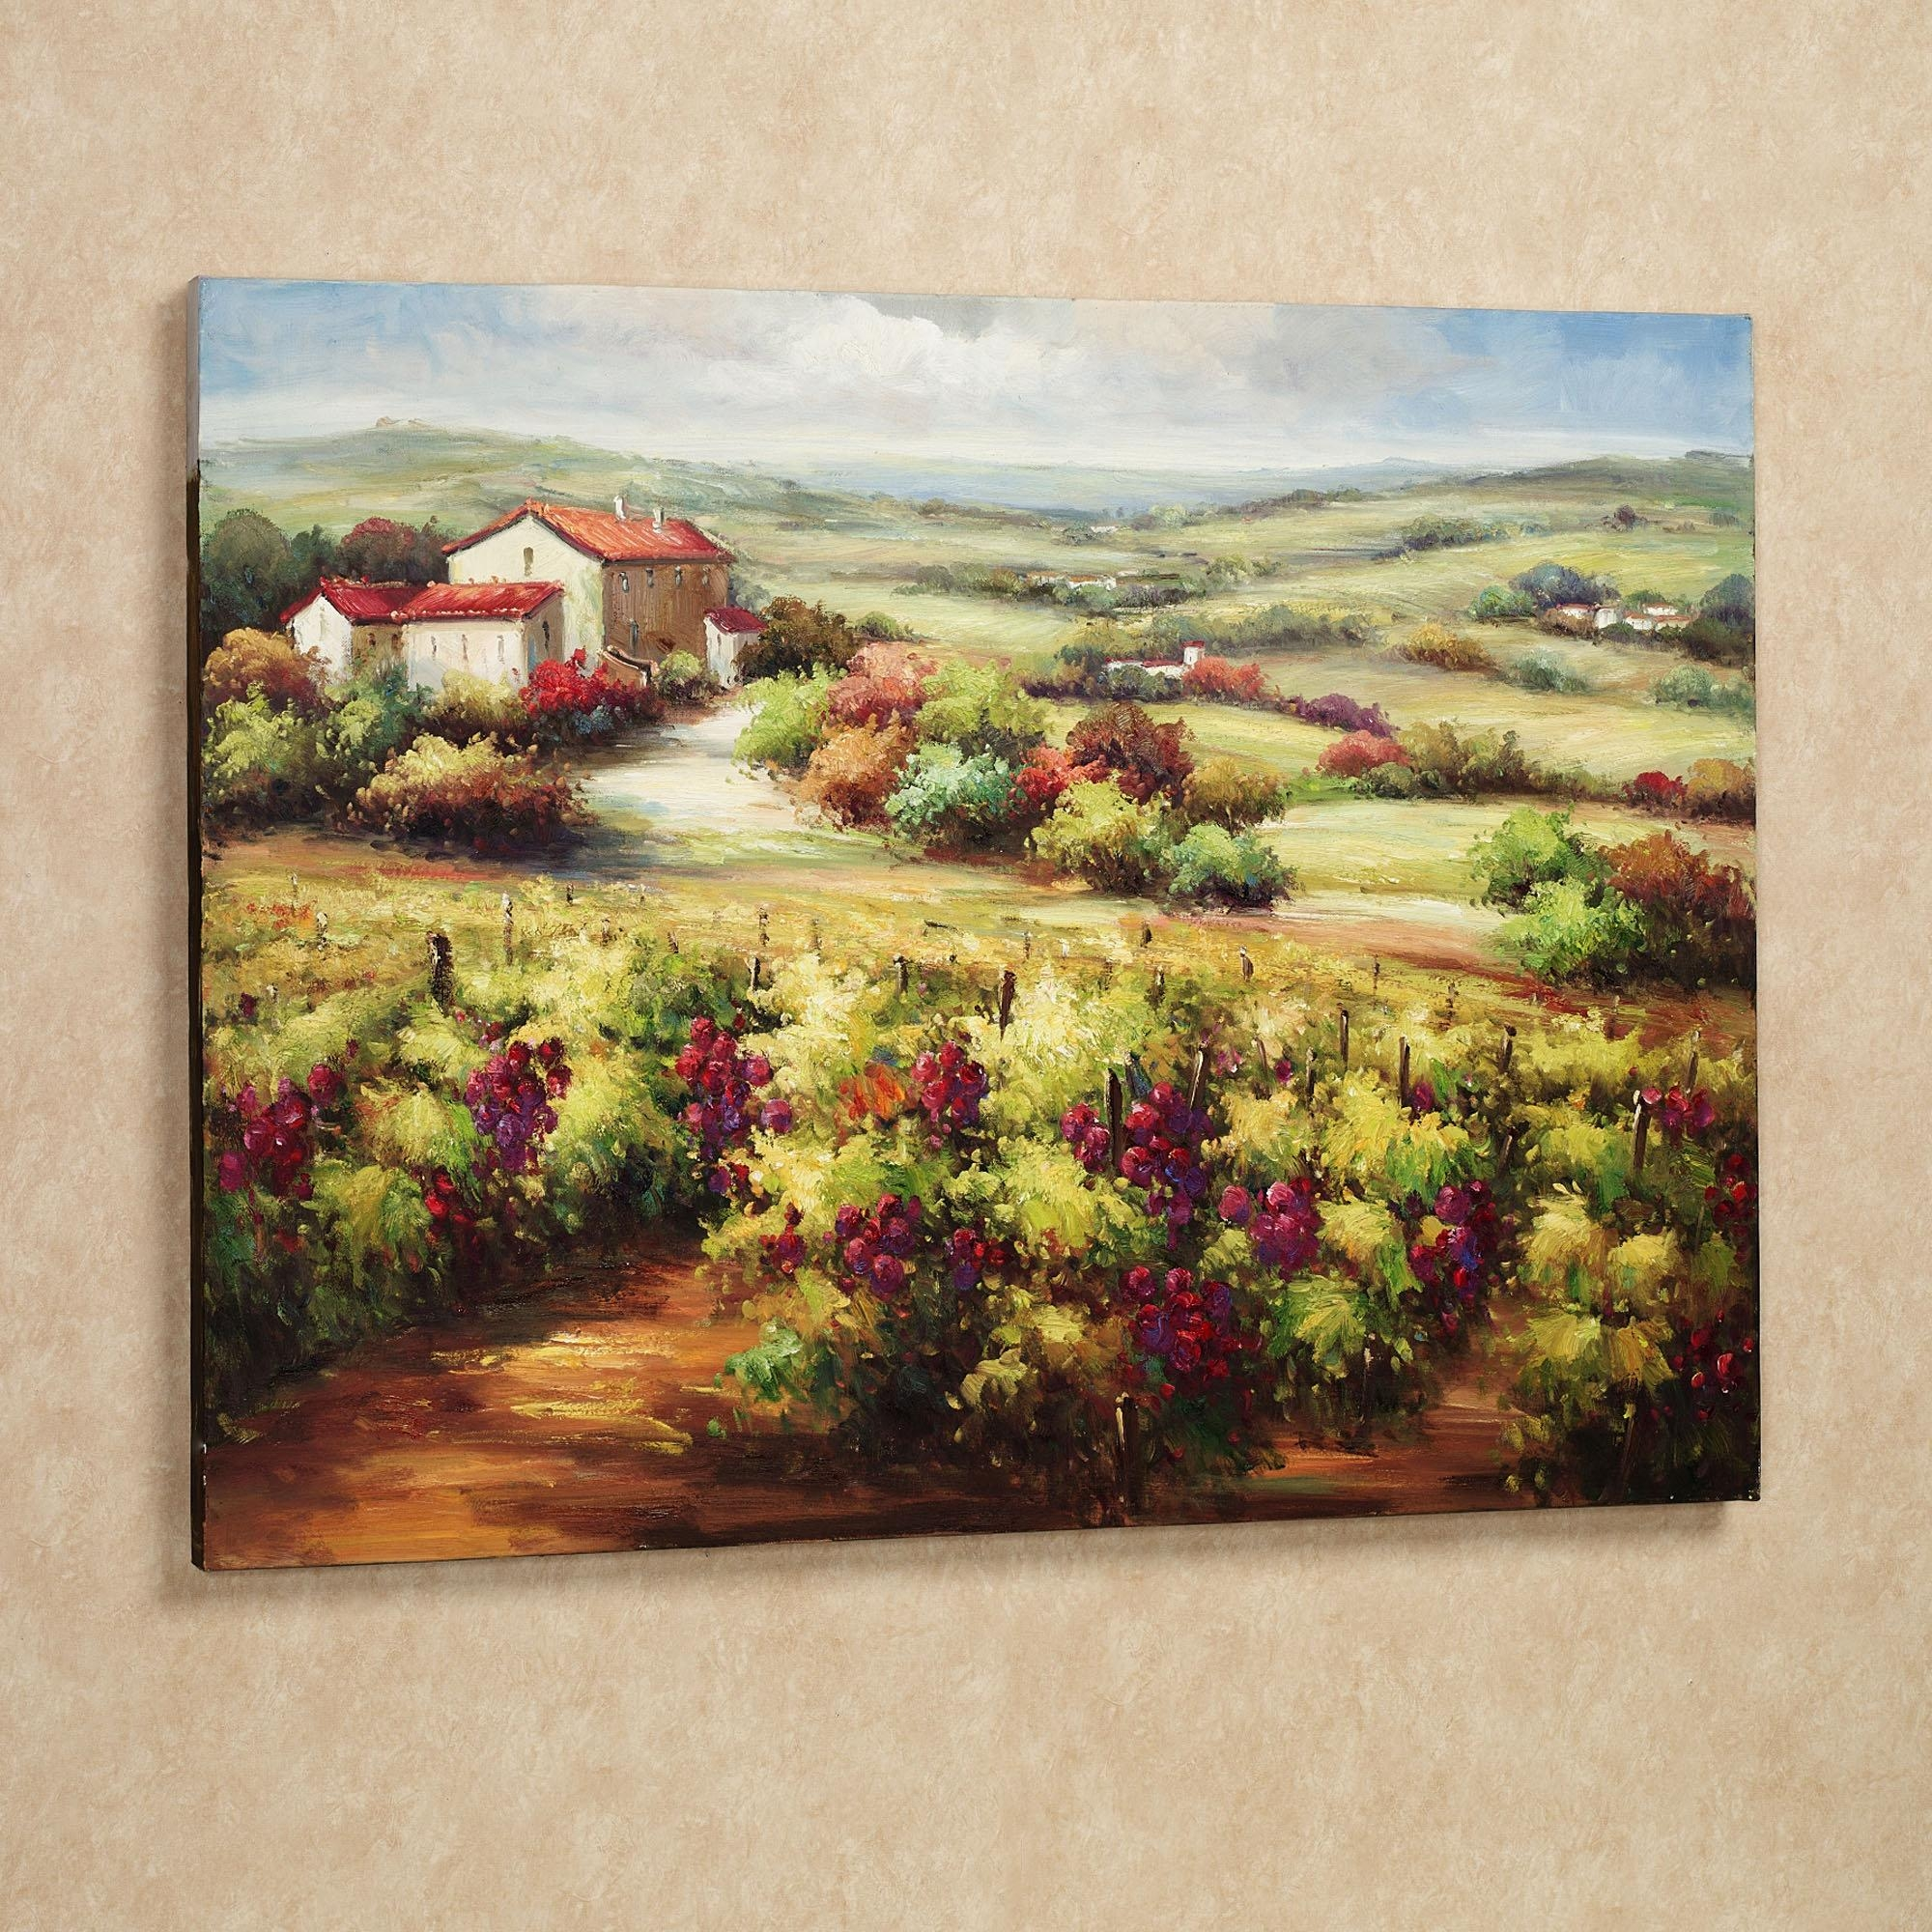 Wall Art Designs: Terrific Vineyard Wall Art Wine Decor Kitchen With Vineyard Wall Art (View 3 of 20)